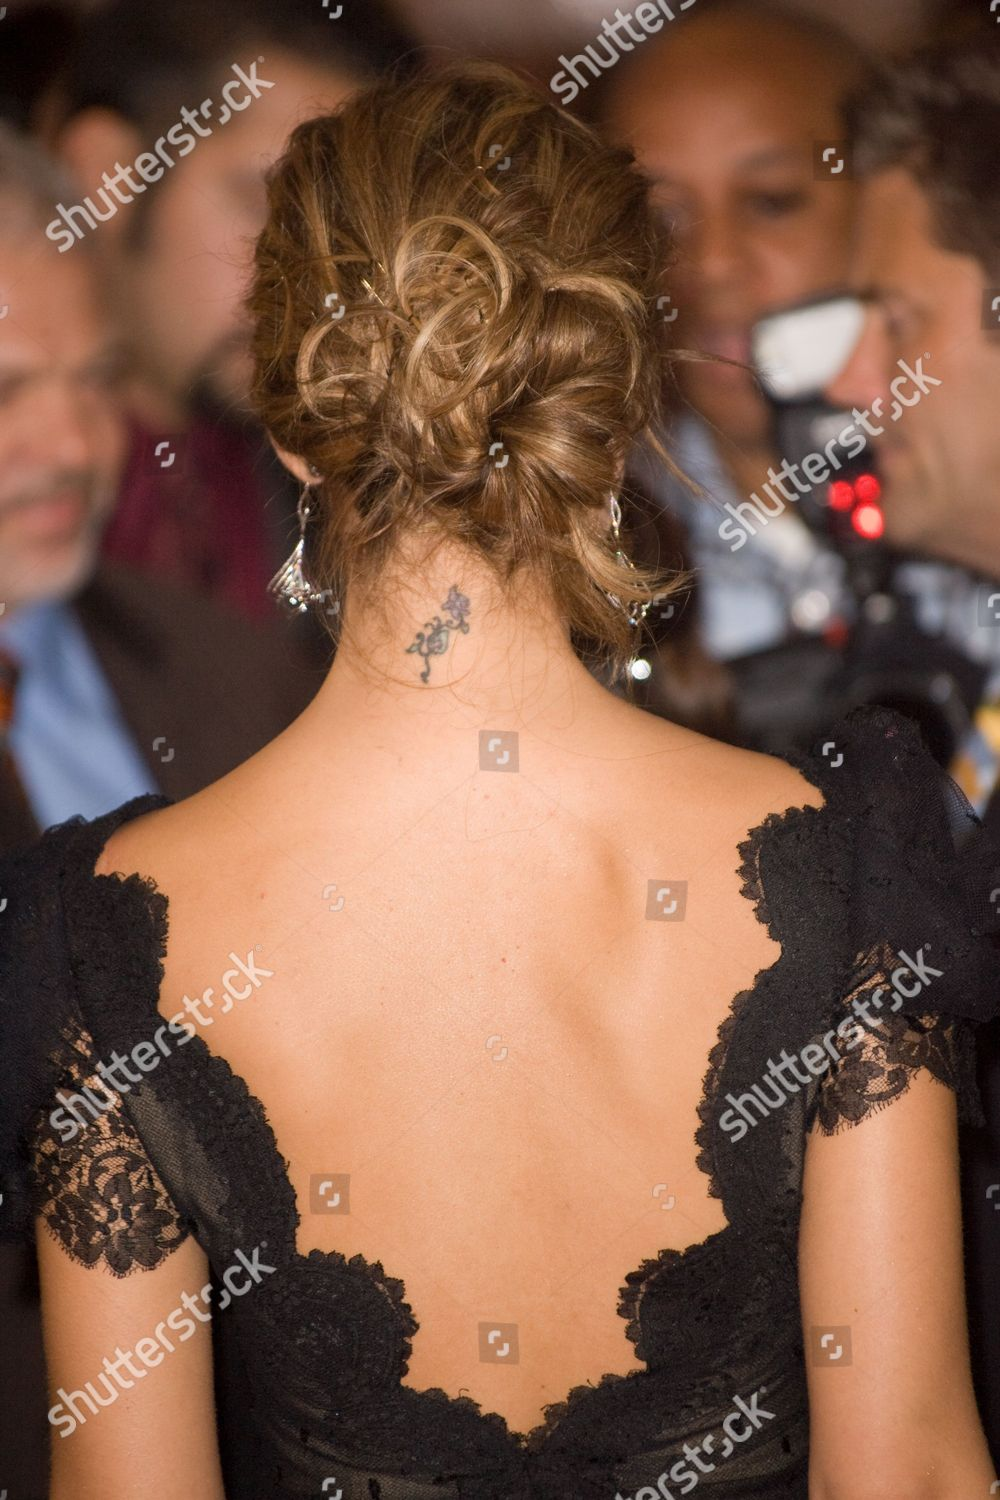 Jessica Alba Tattoo Back